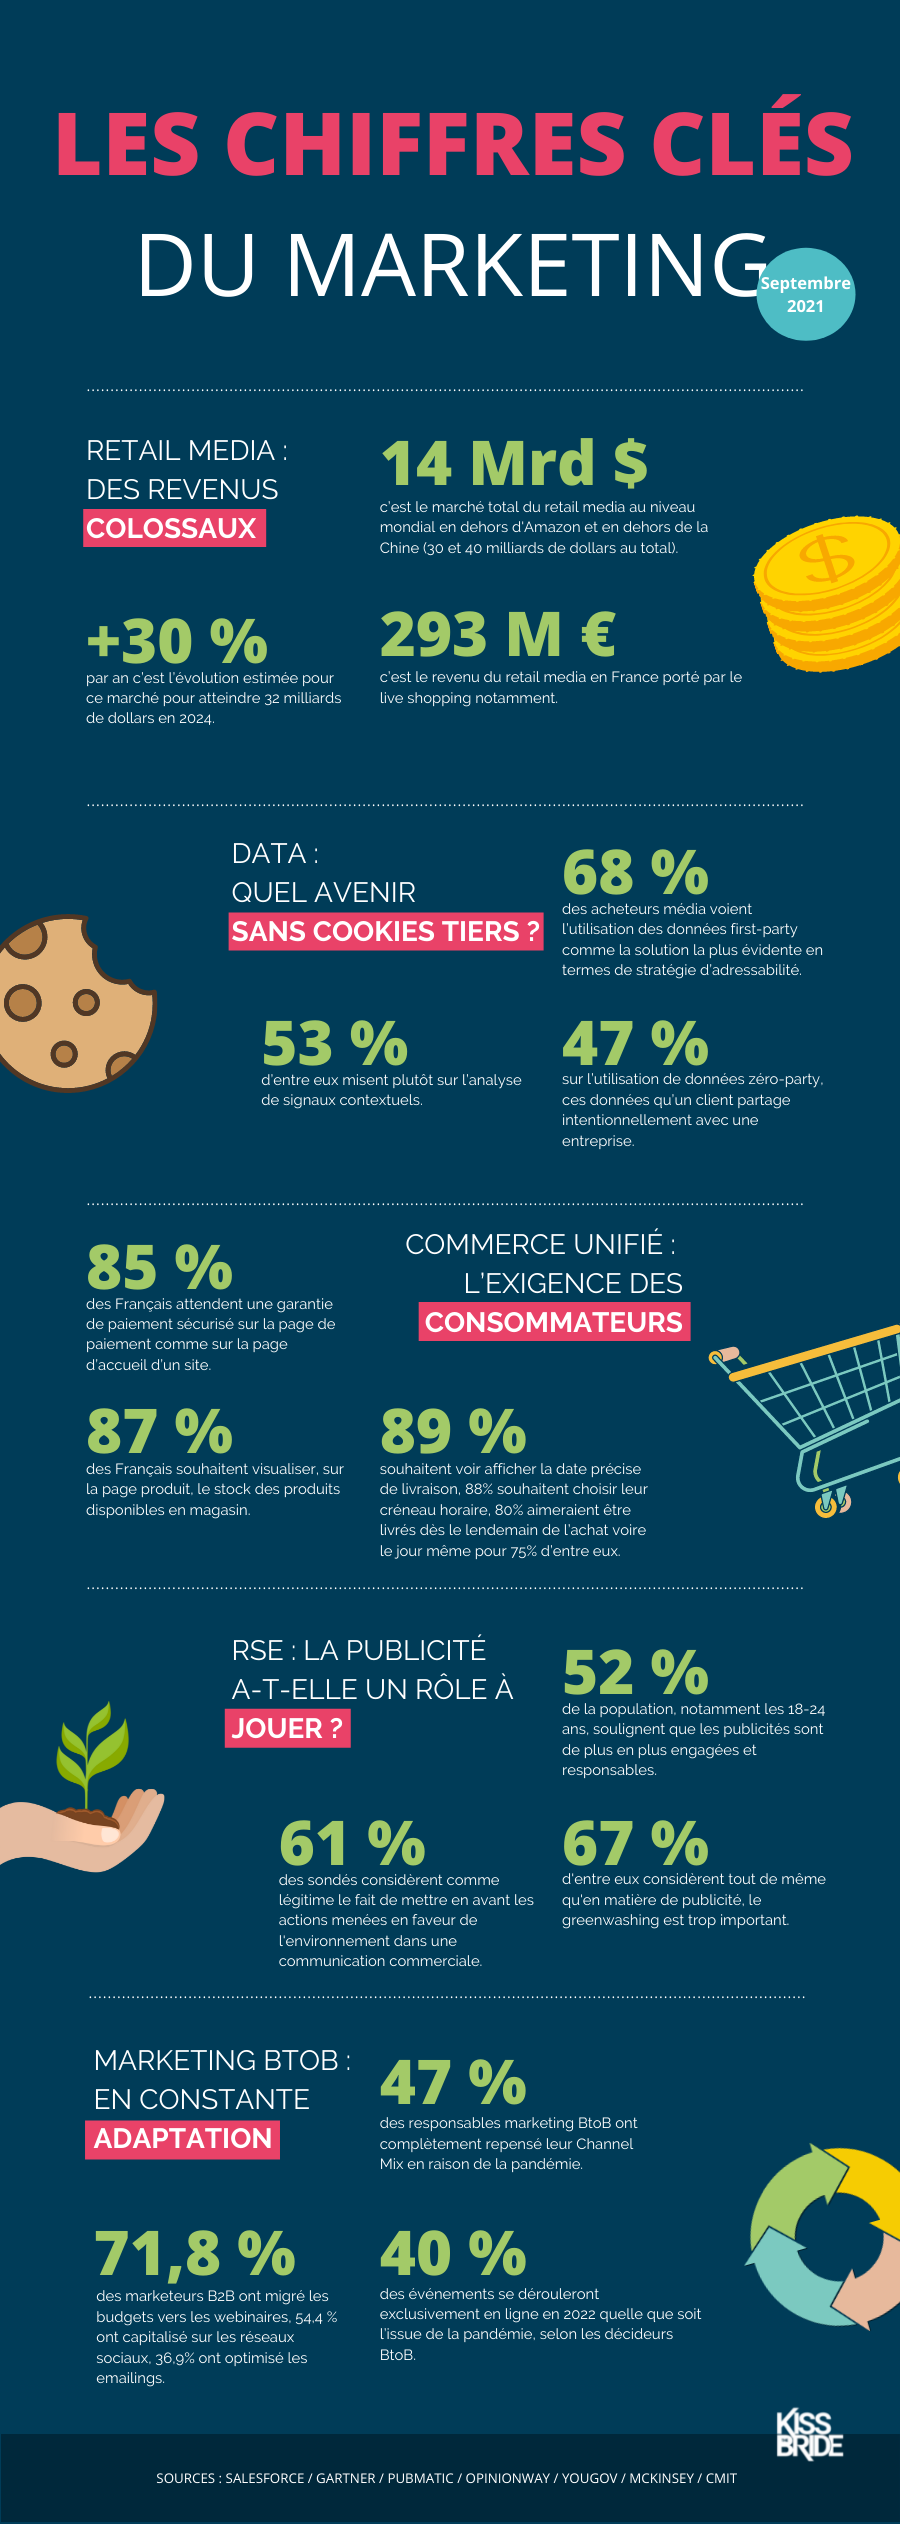 Infographie_chiffres_cles_sept2021